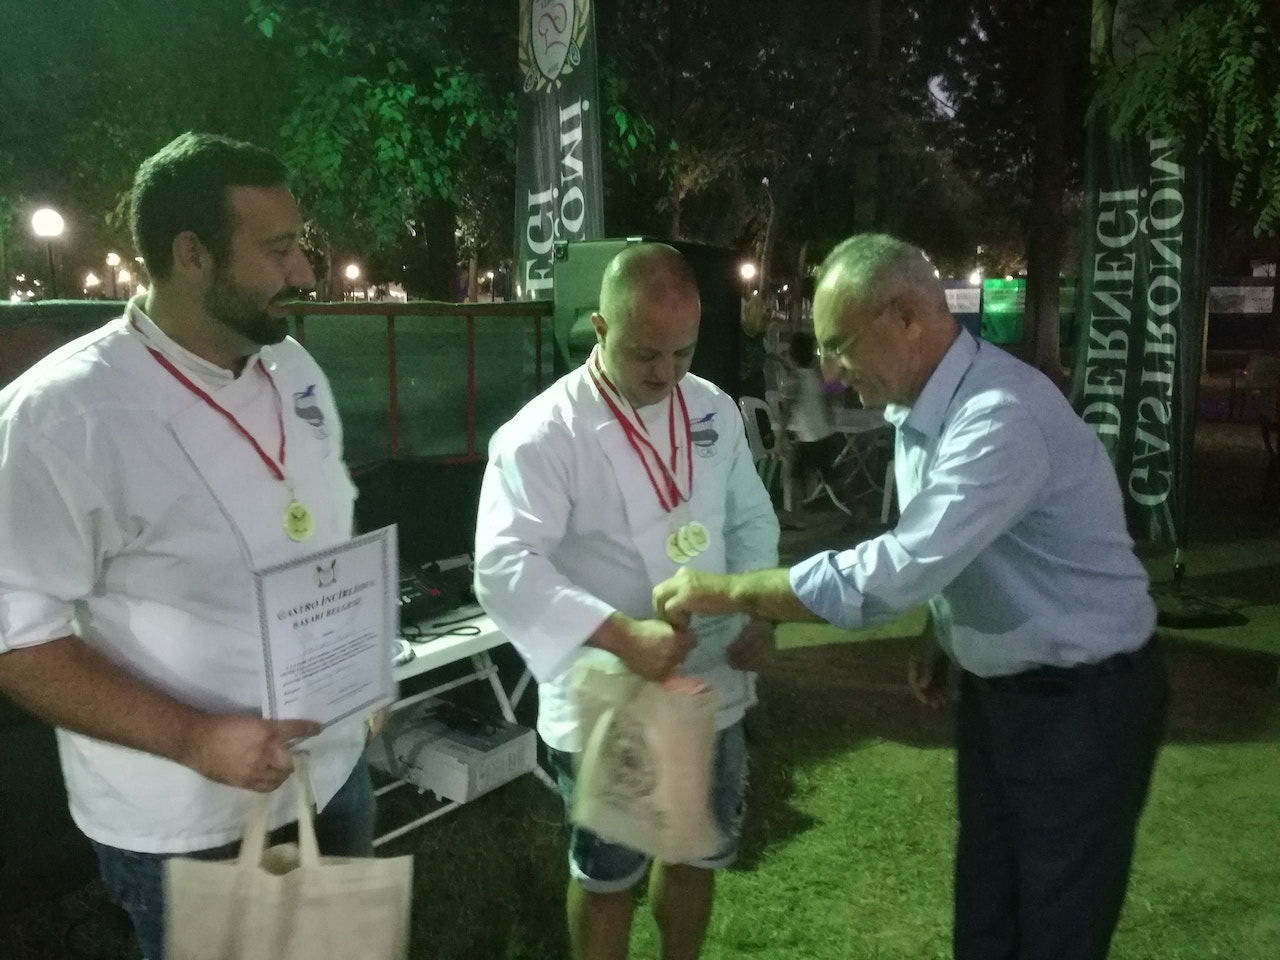 Bulgarian Chefs Took The Gold At An International Culinary Arts